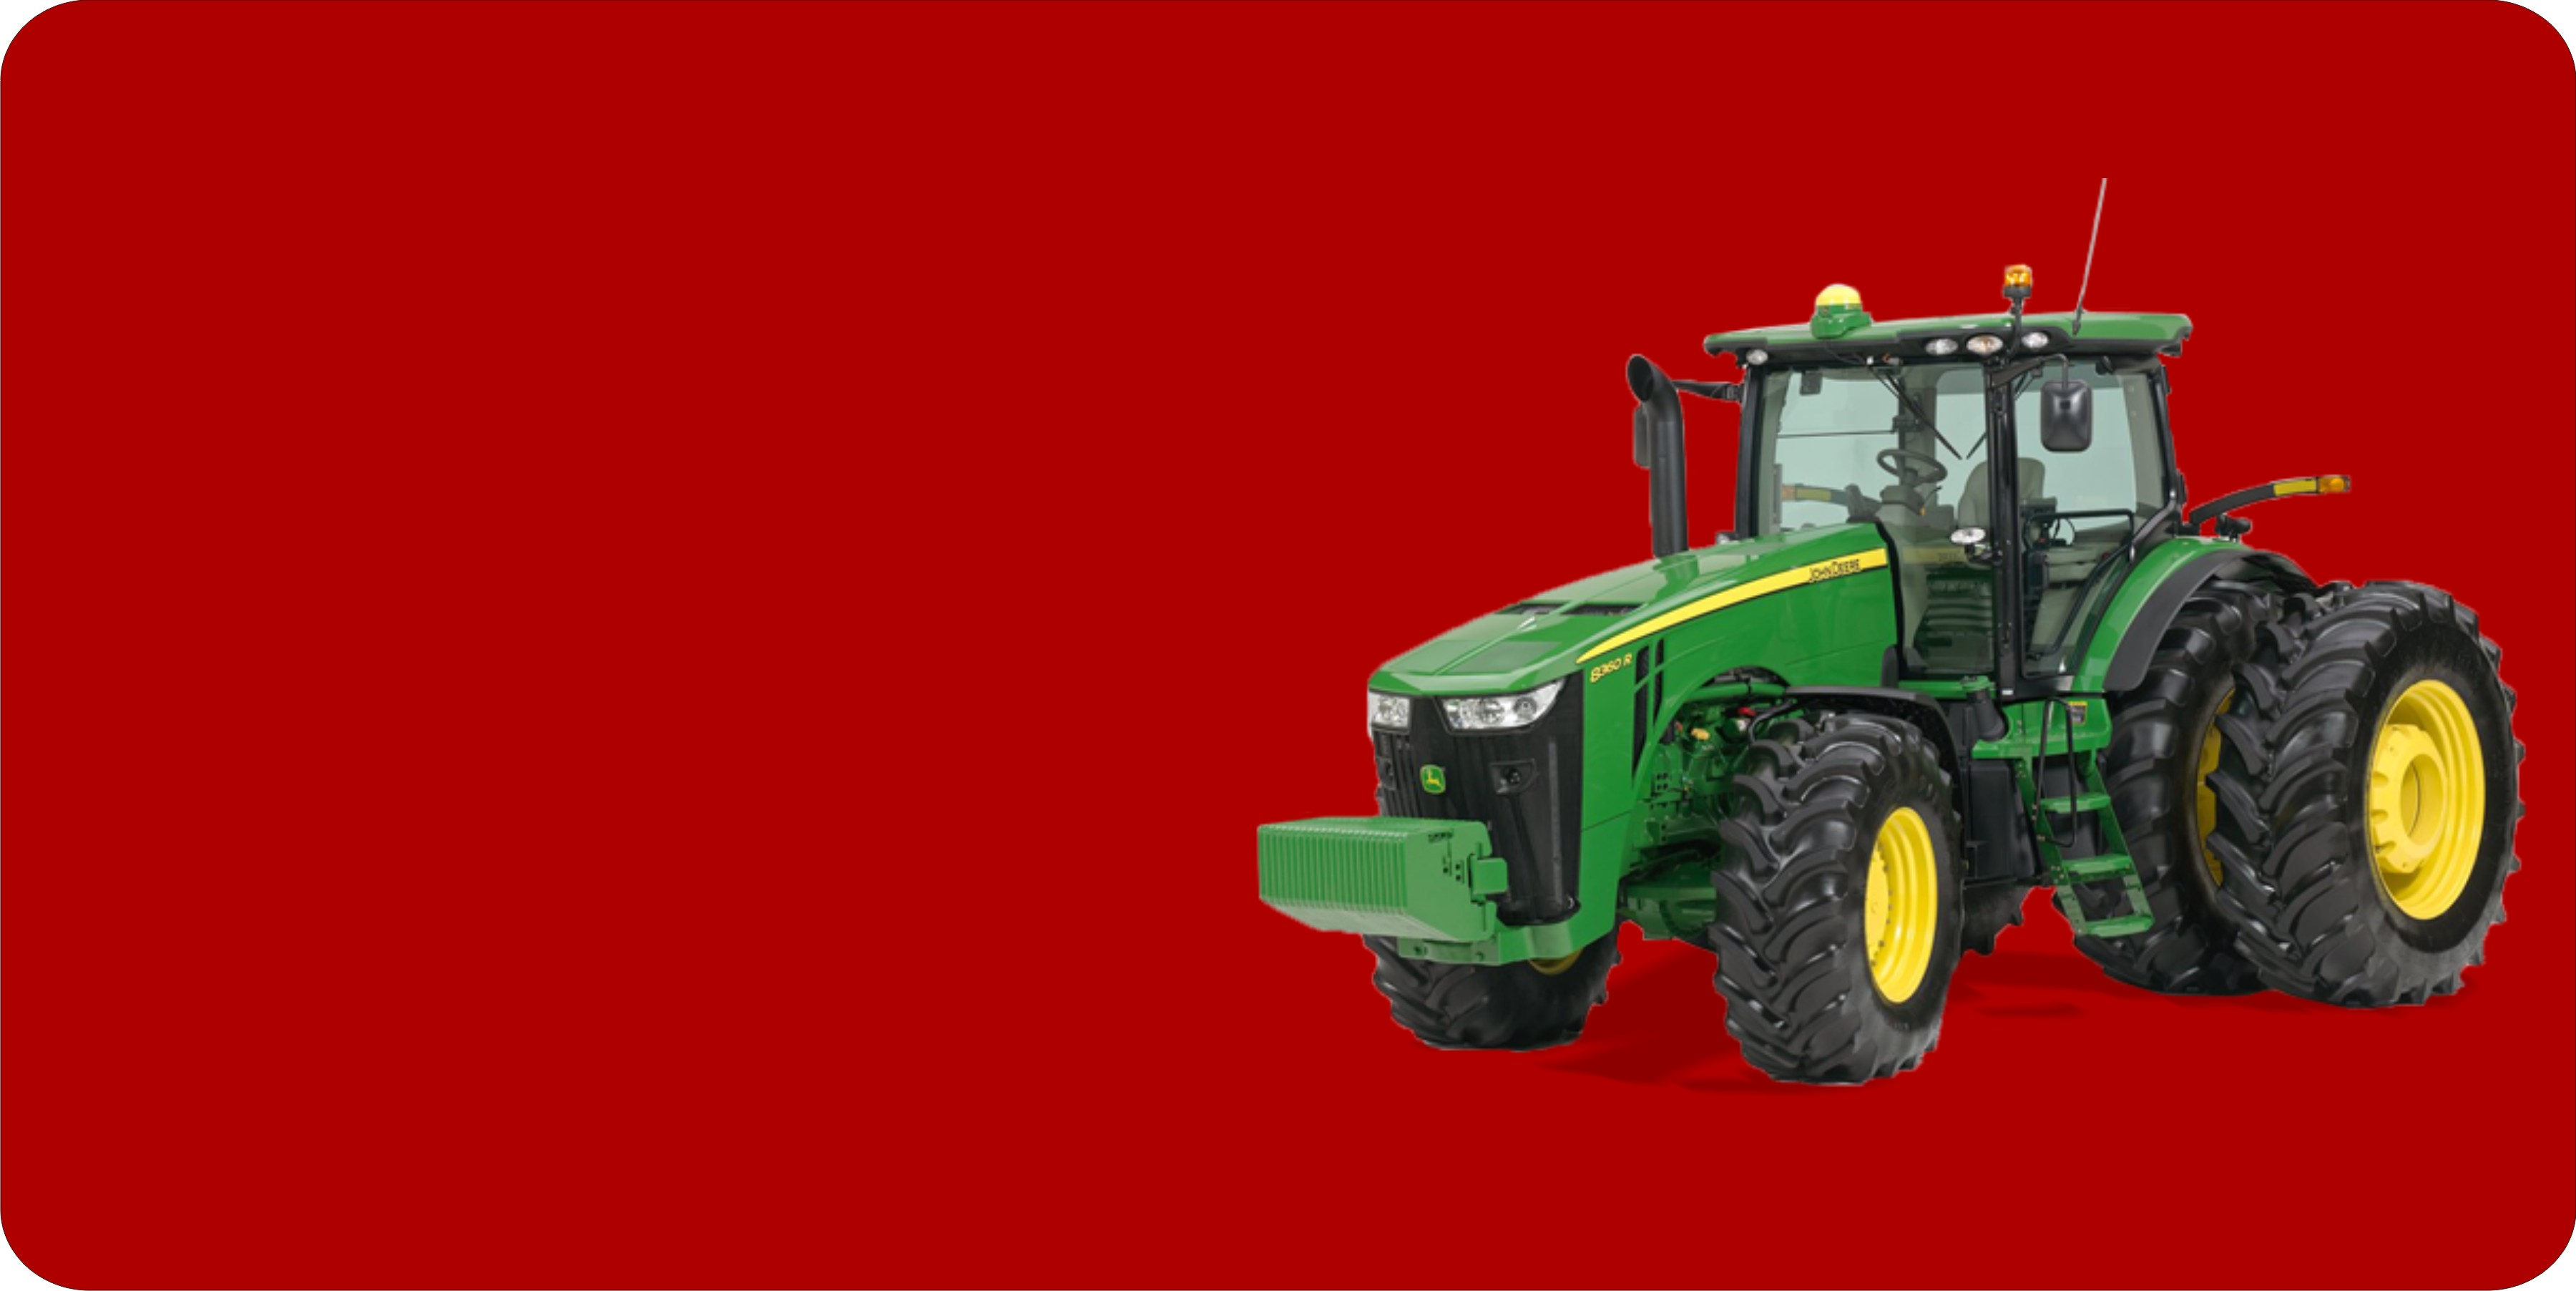 JOHN DEERE Tractor Offset On Red Plate